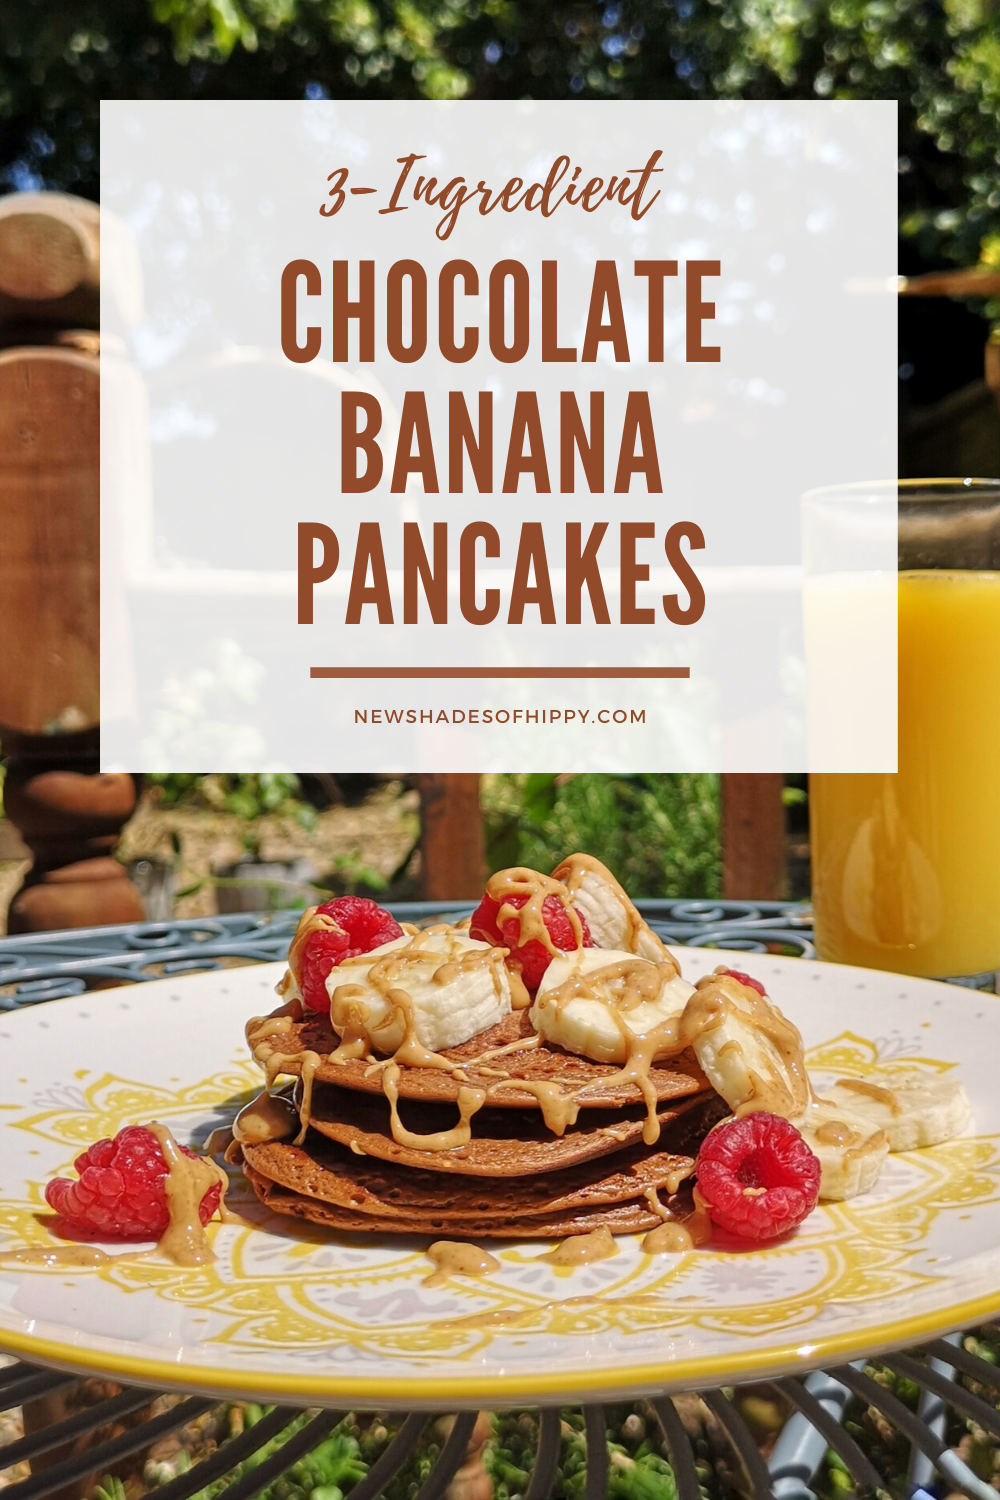 Pancakes on plate with raspberries and banana and text: 3 ingredient chocolate banana pancakes